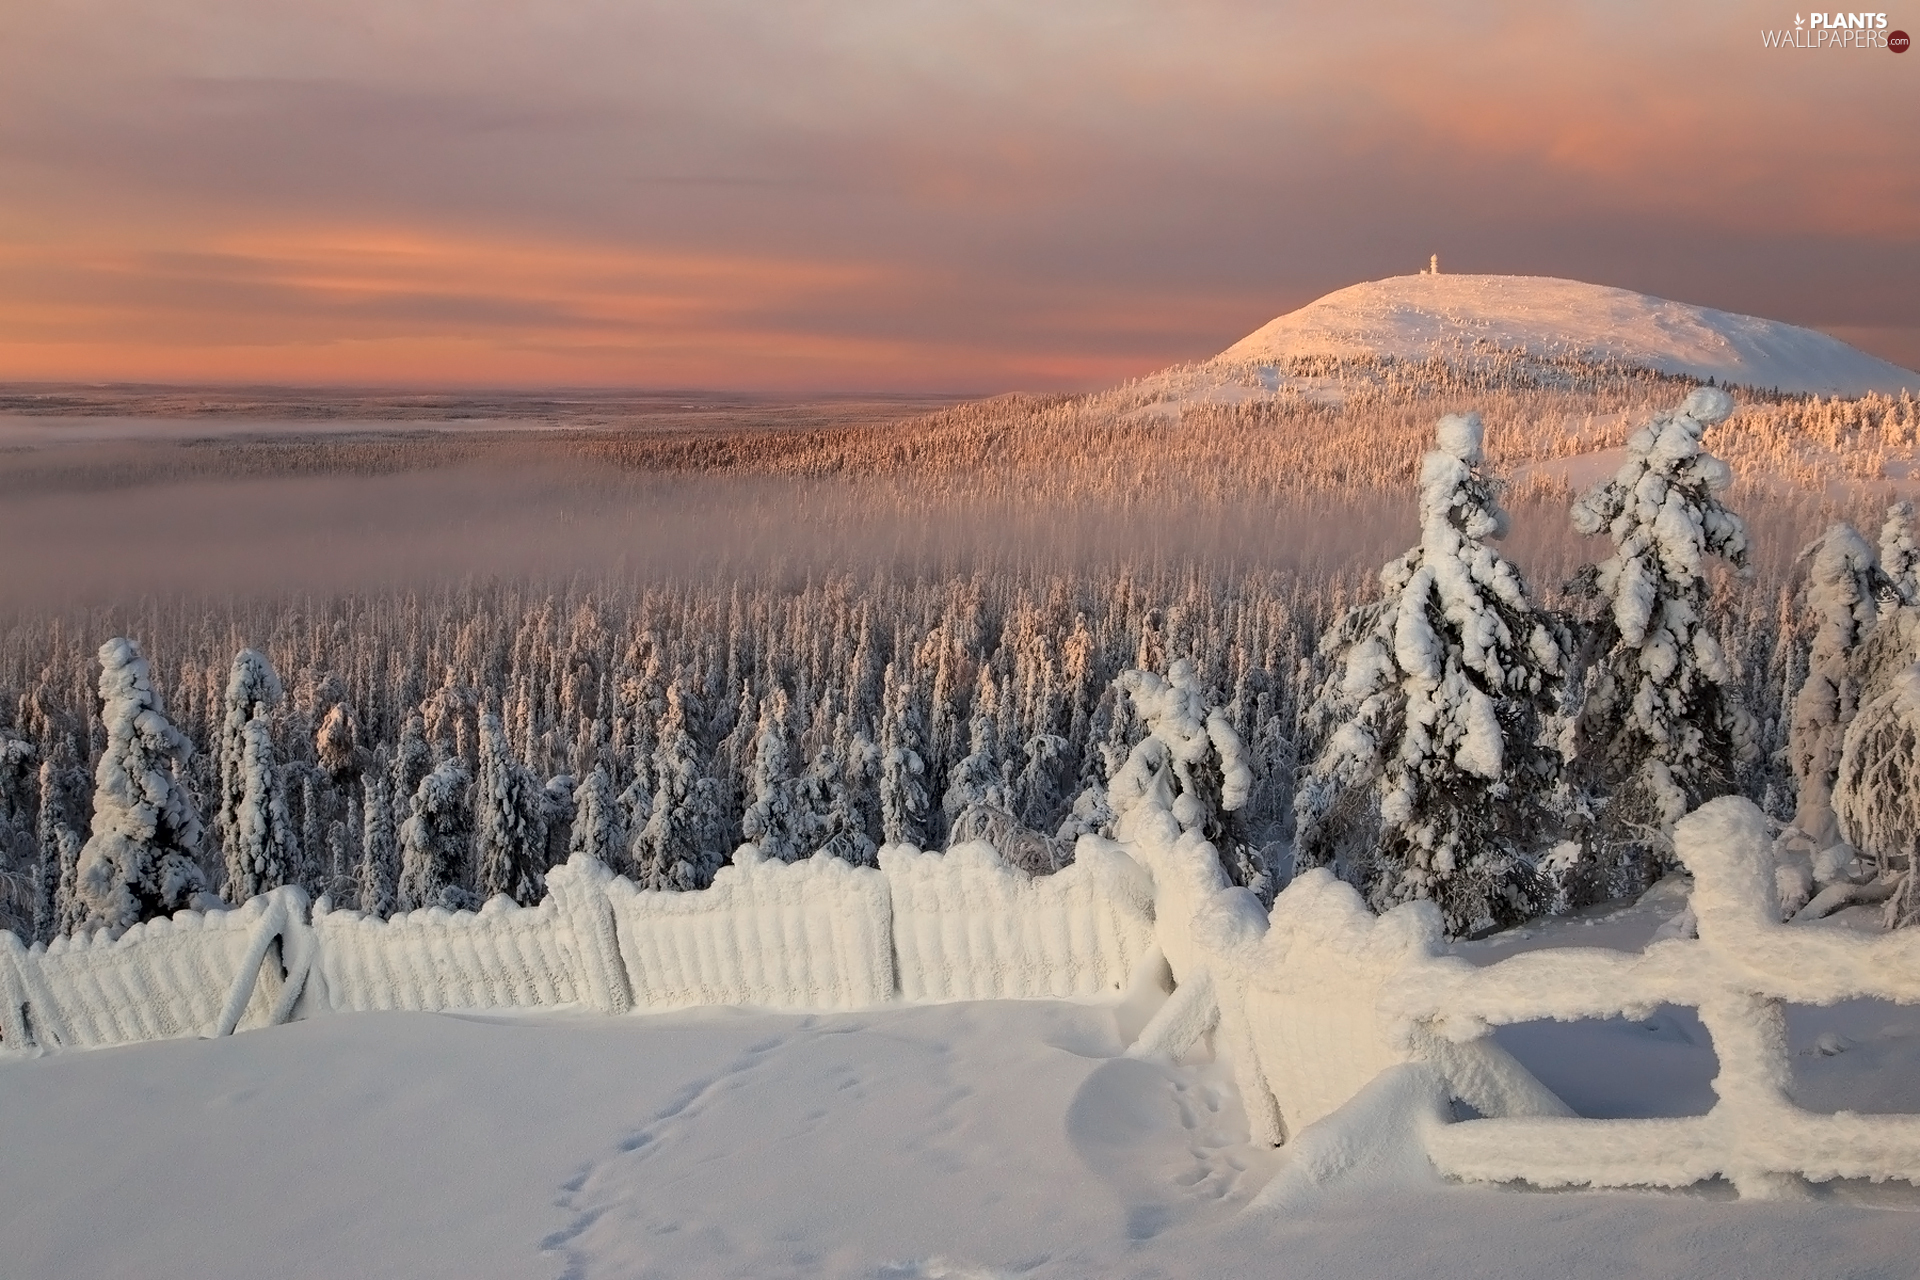 Snowy, winter, viewes, fence, trees, Mountains